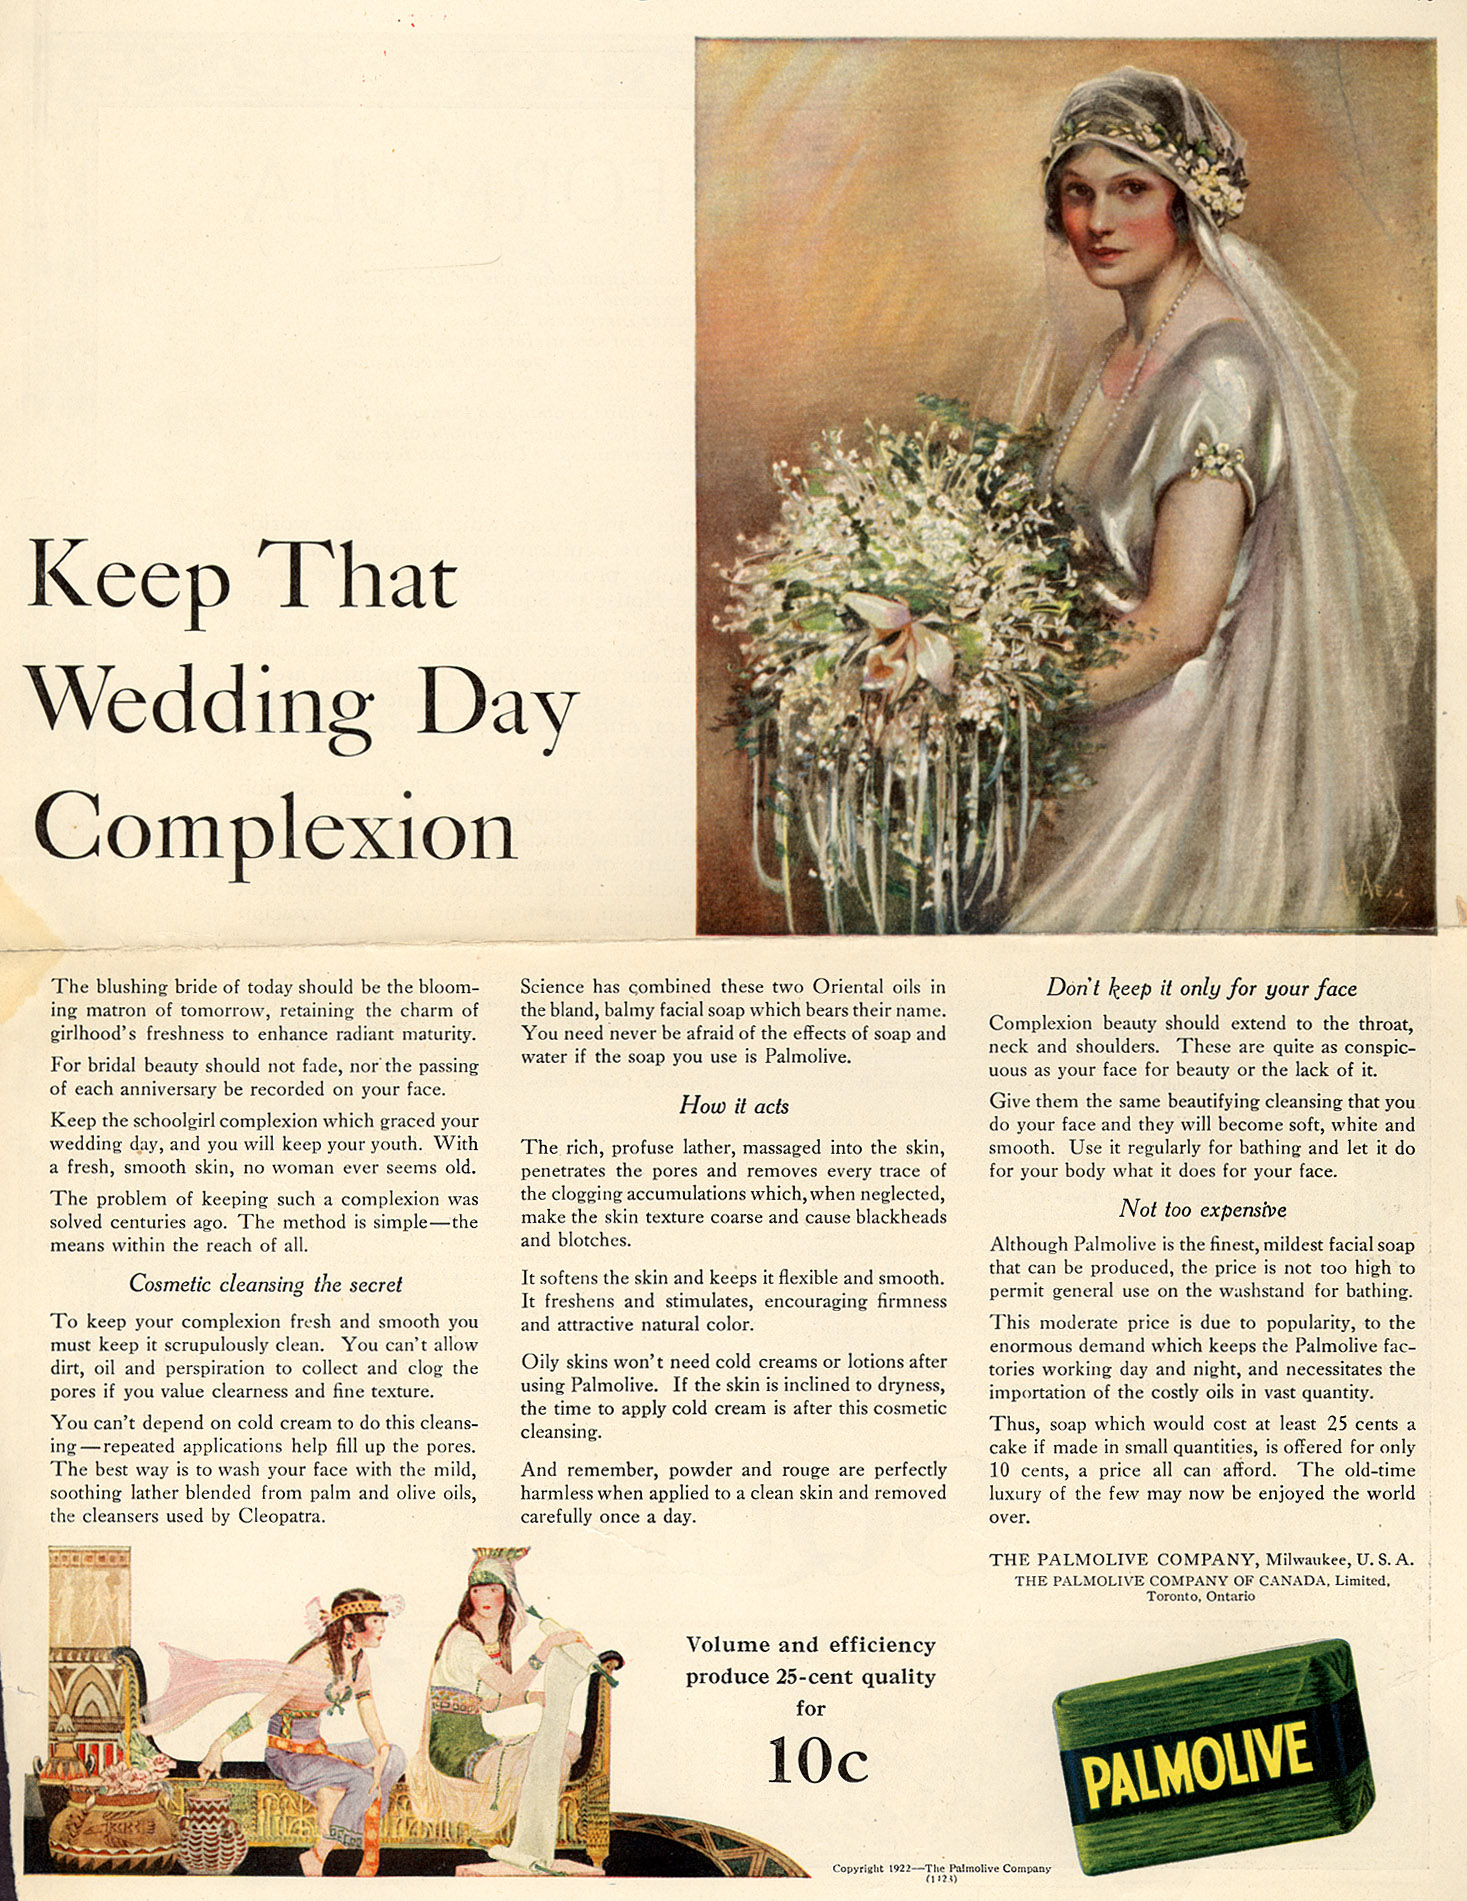 http://upload.wikimedia.org/wikipedia/commons/4/4a/Palmolive_soap_1922_advertisement_ladies_home_journal.jpeg